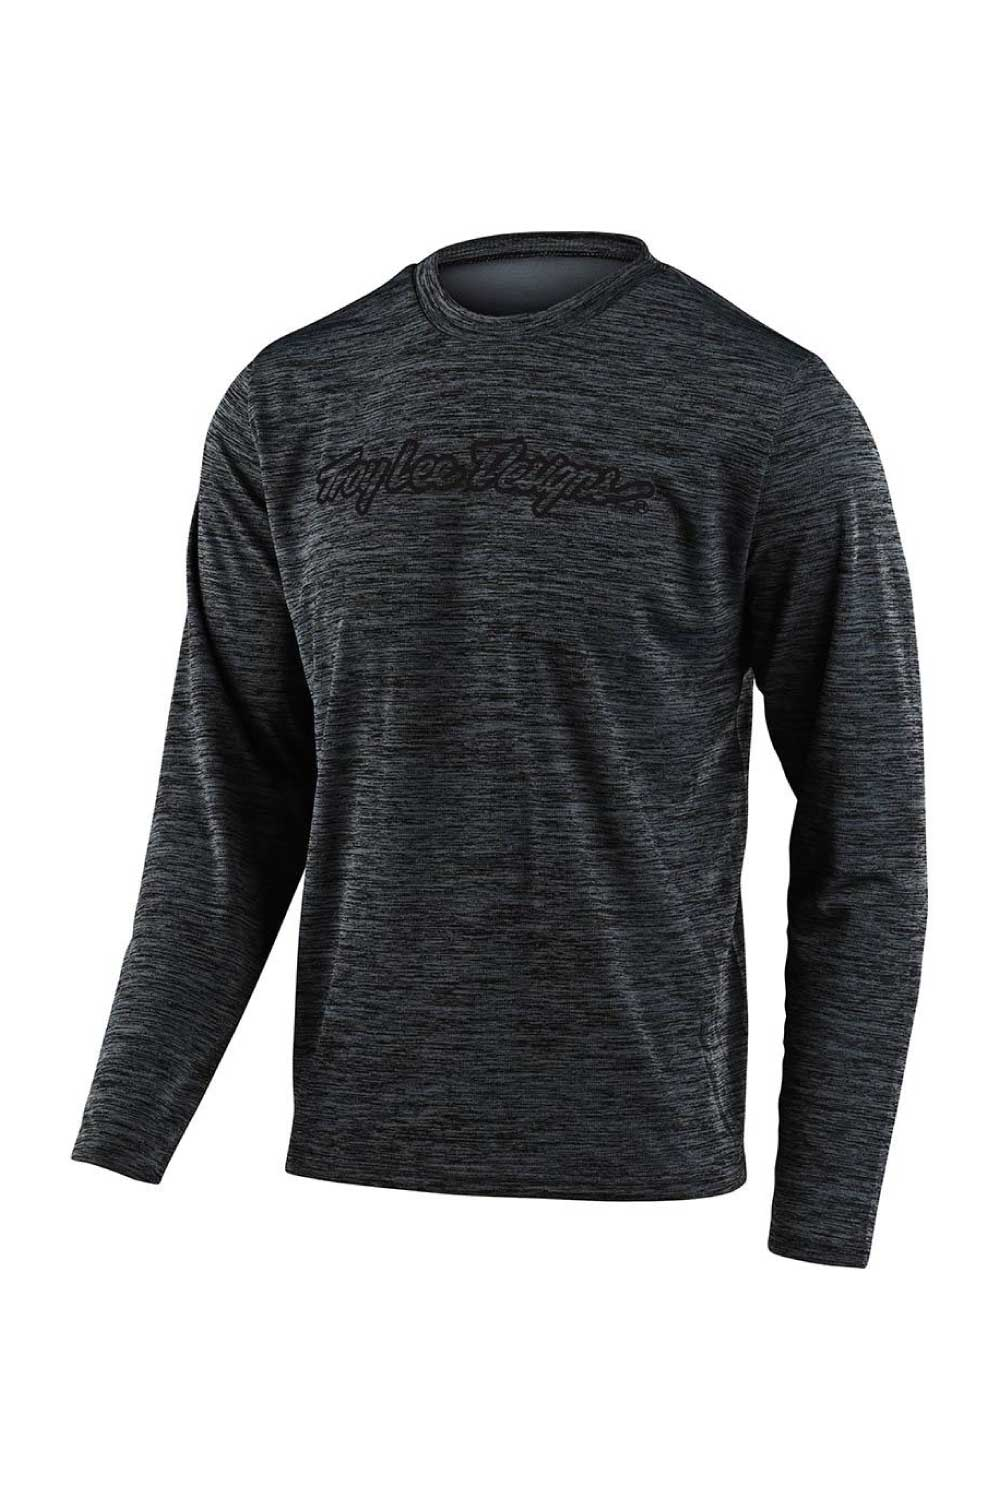 SIGNATURE HEATHER BLACK / GRAY